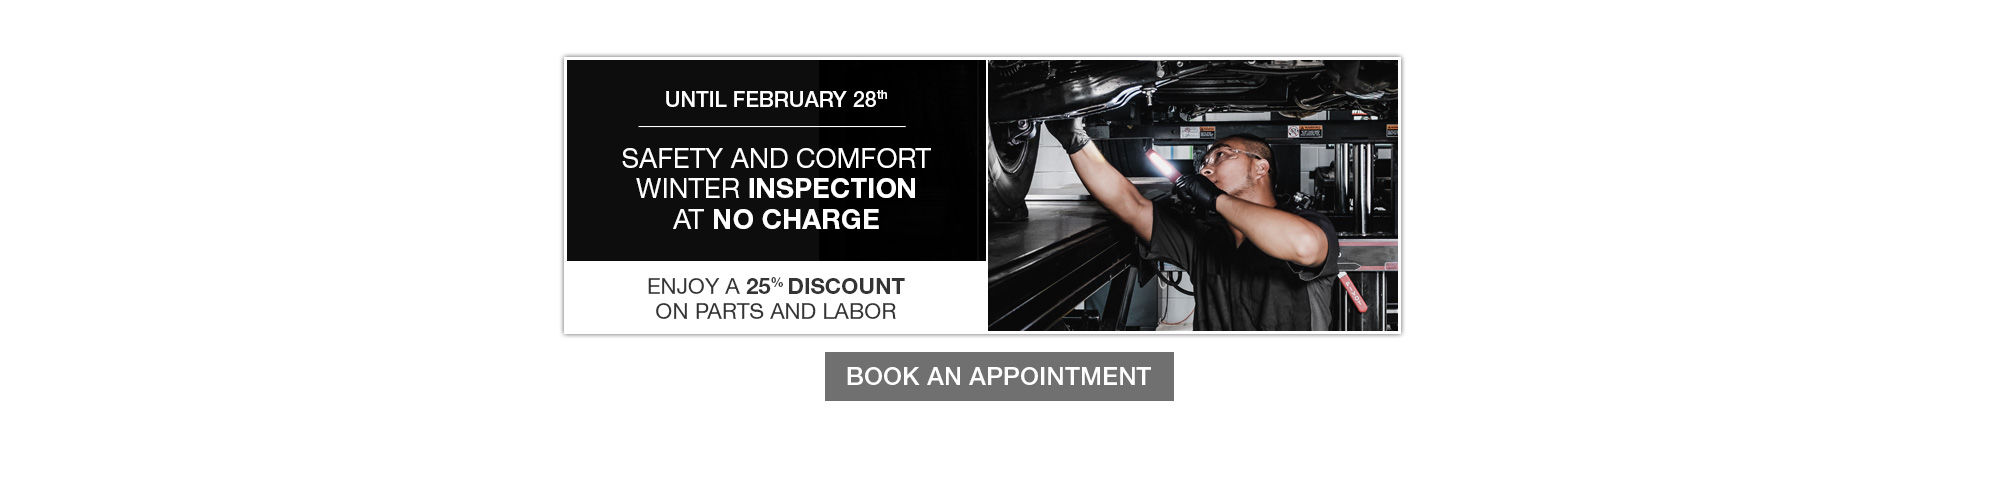 Safety and comfort inspection